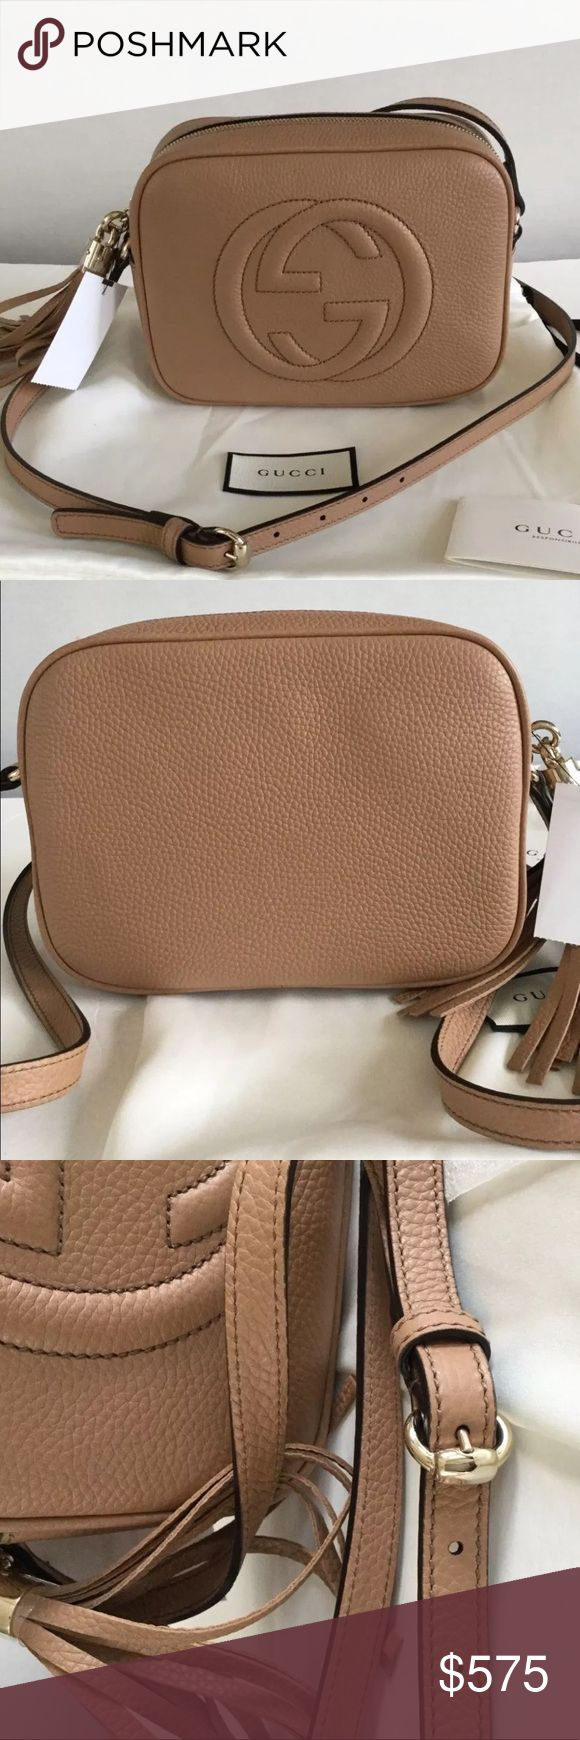 Beige Gucci SoHo Disco Bag 100% Authentic 🔺 We are a very negotiable service 🔺 We provide overnight shipping and express shipping 🔺 Our transactions are made through third party applications 🔺 If you are interested in buying this product please contact us via 646-431-6521 🔺 Gucci Bags Crossbody Bags